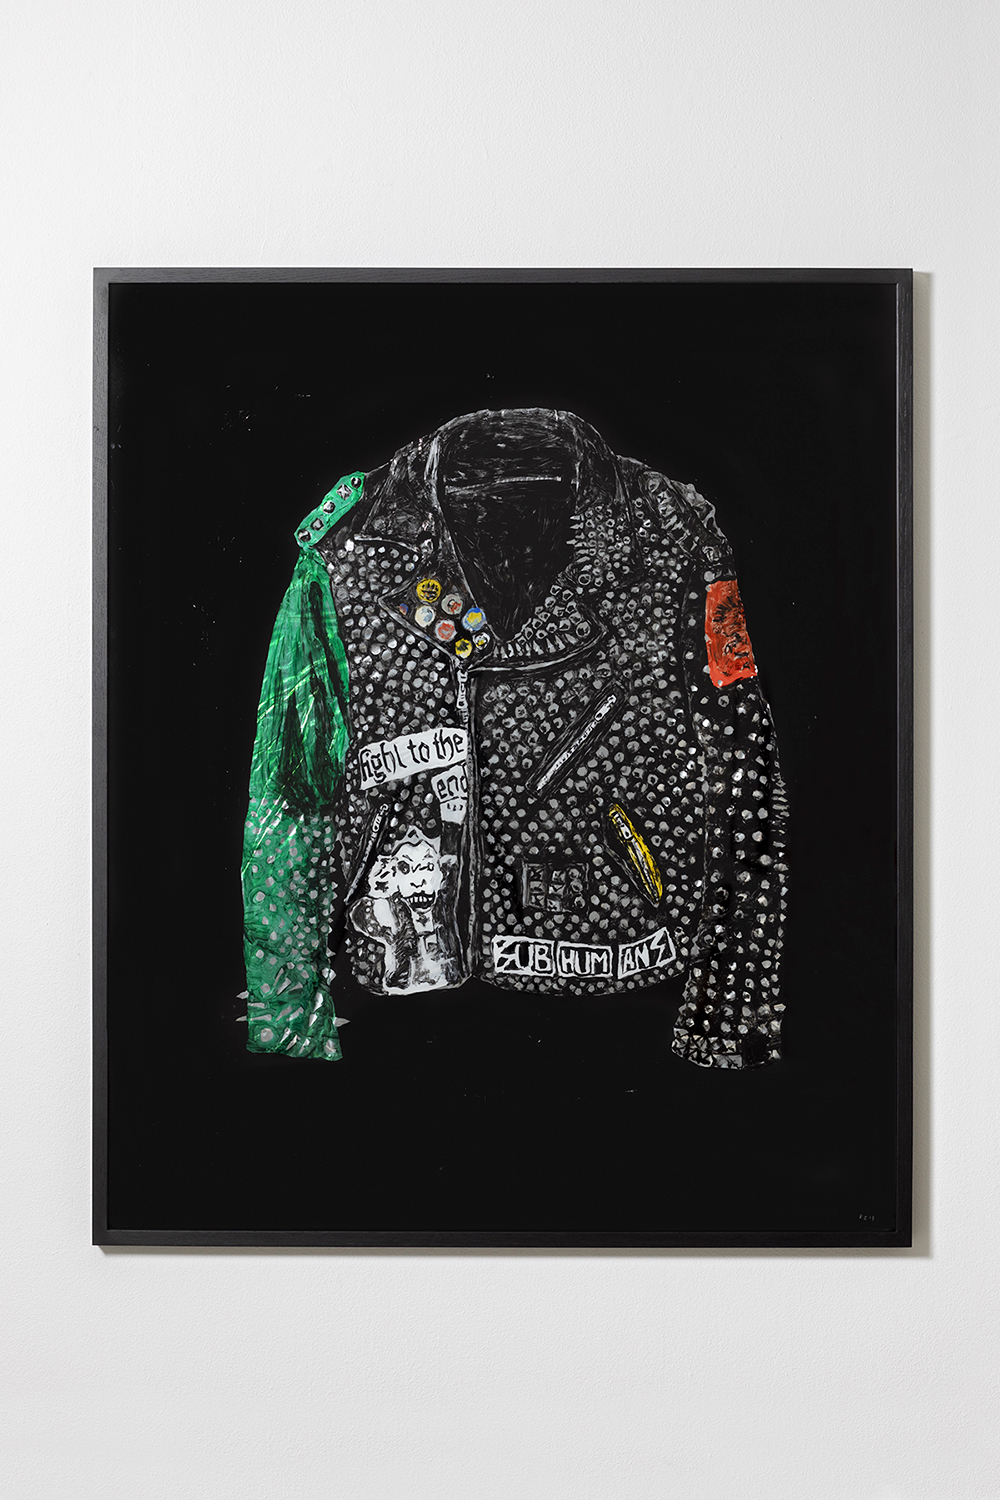 Rose Eken, Jacket with Green Sleeve, 2018 (Acrylic and tinsel foil on glass, 120 x 100 cm).